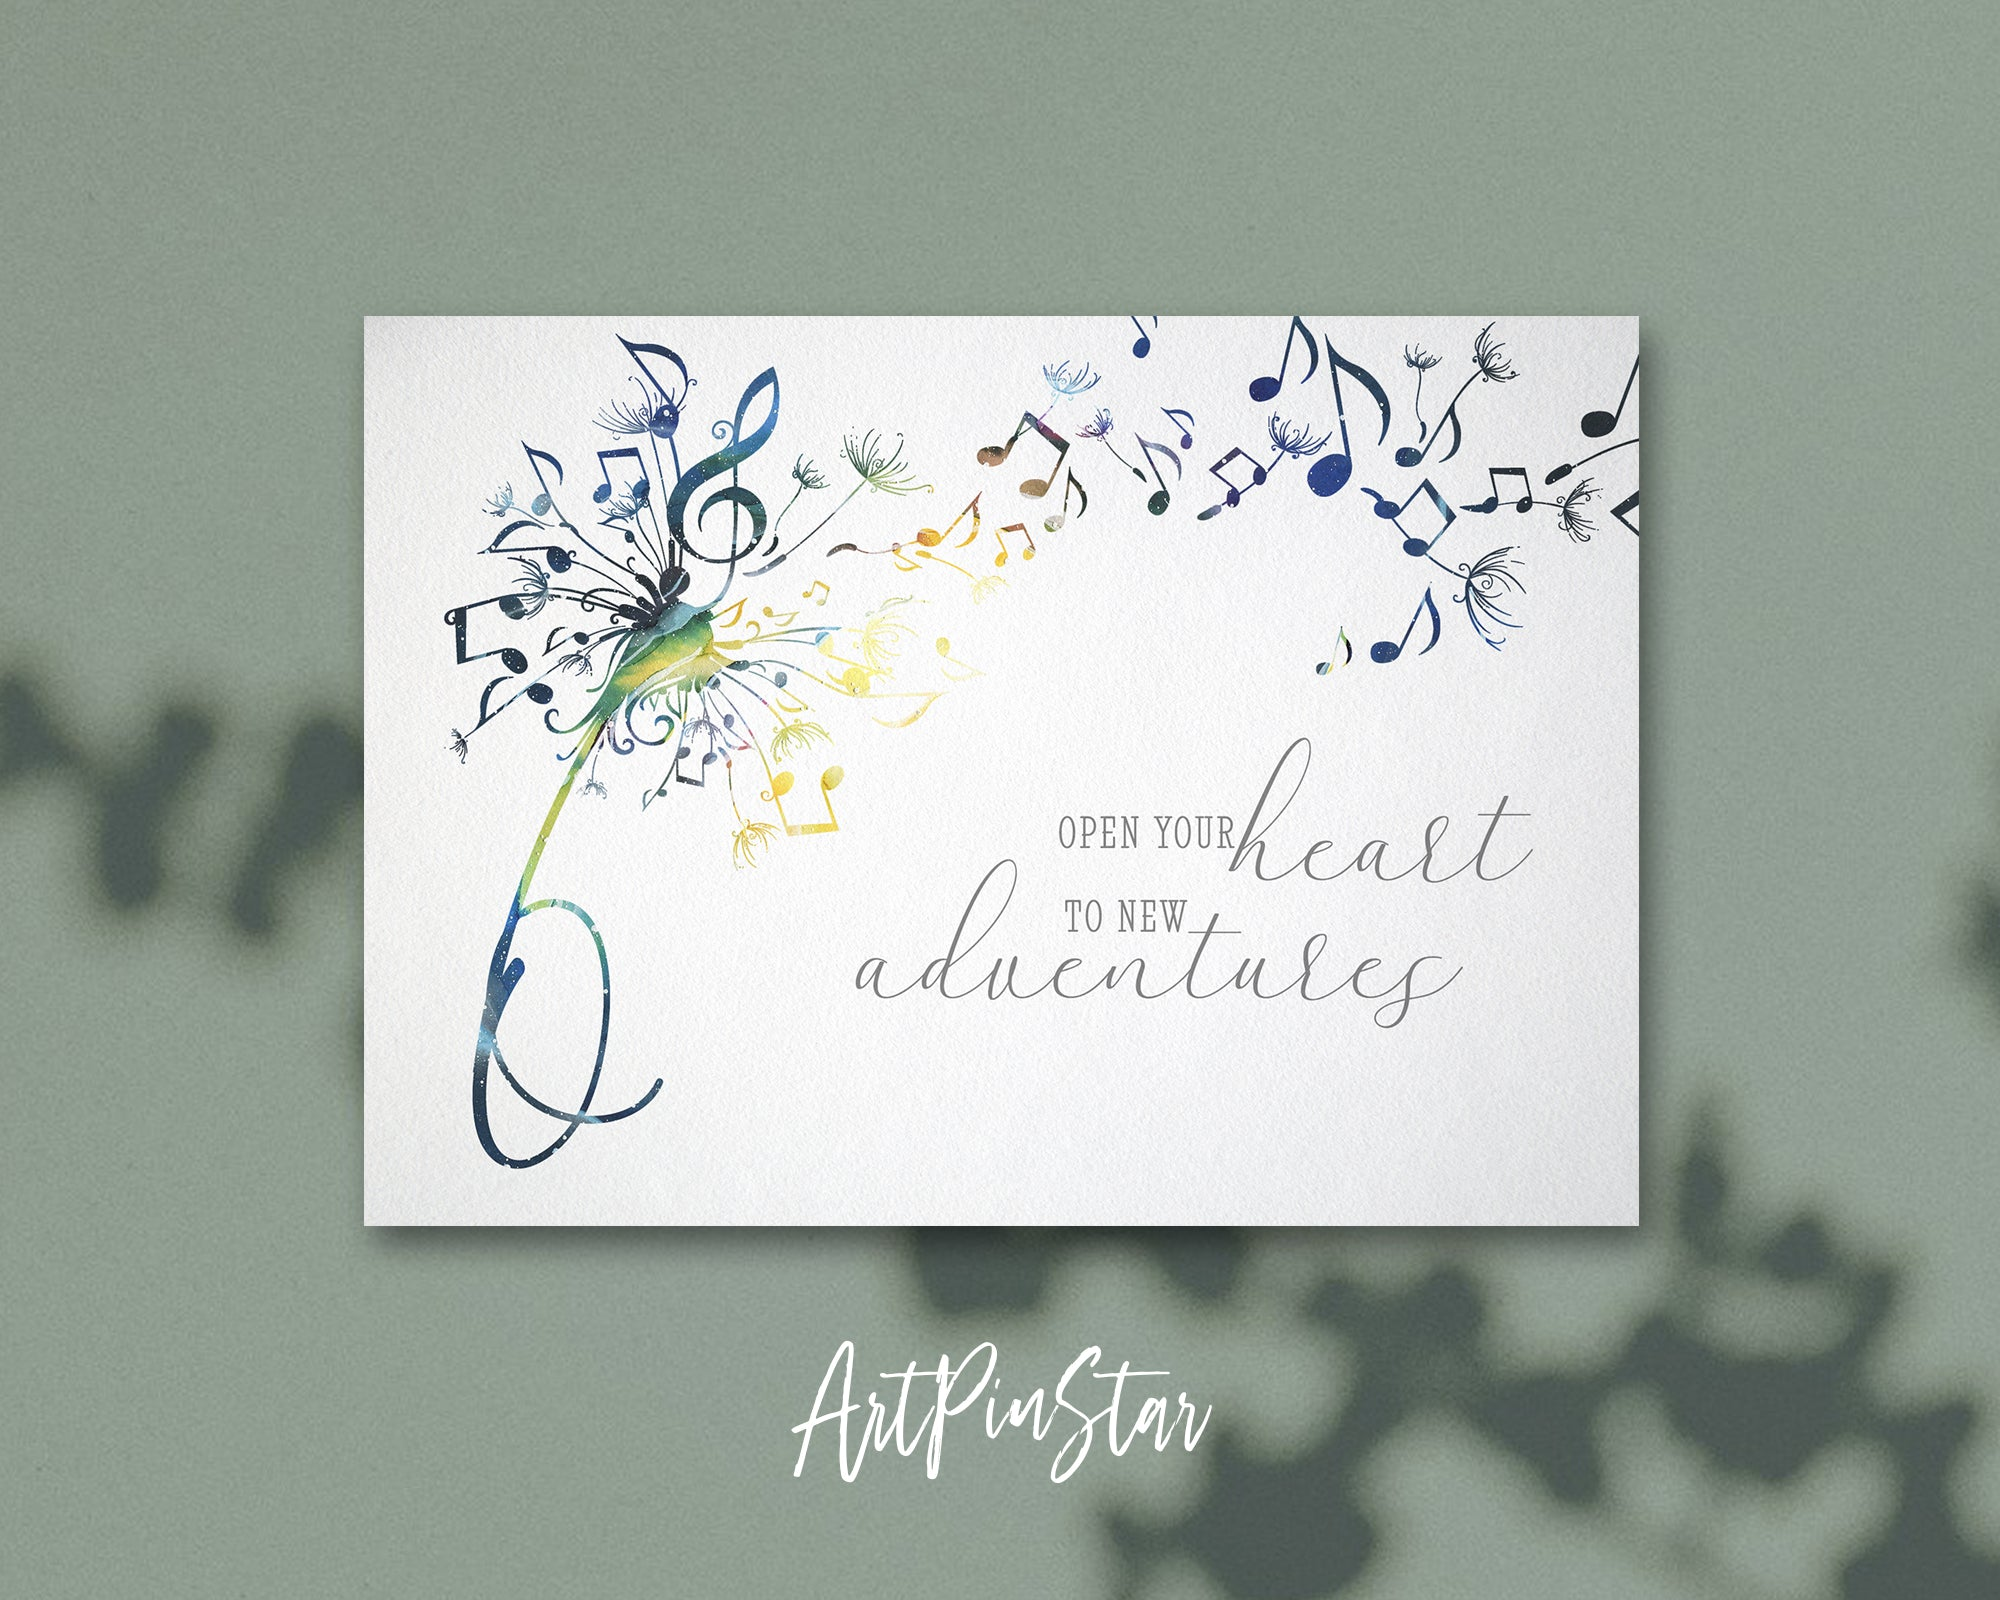 Inspiring Music Quote Letter O Symbol Open your heart to new adventures